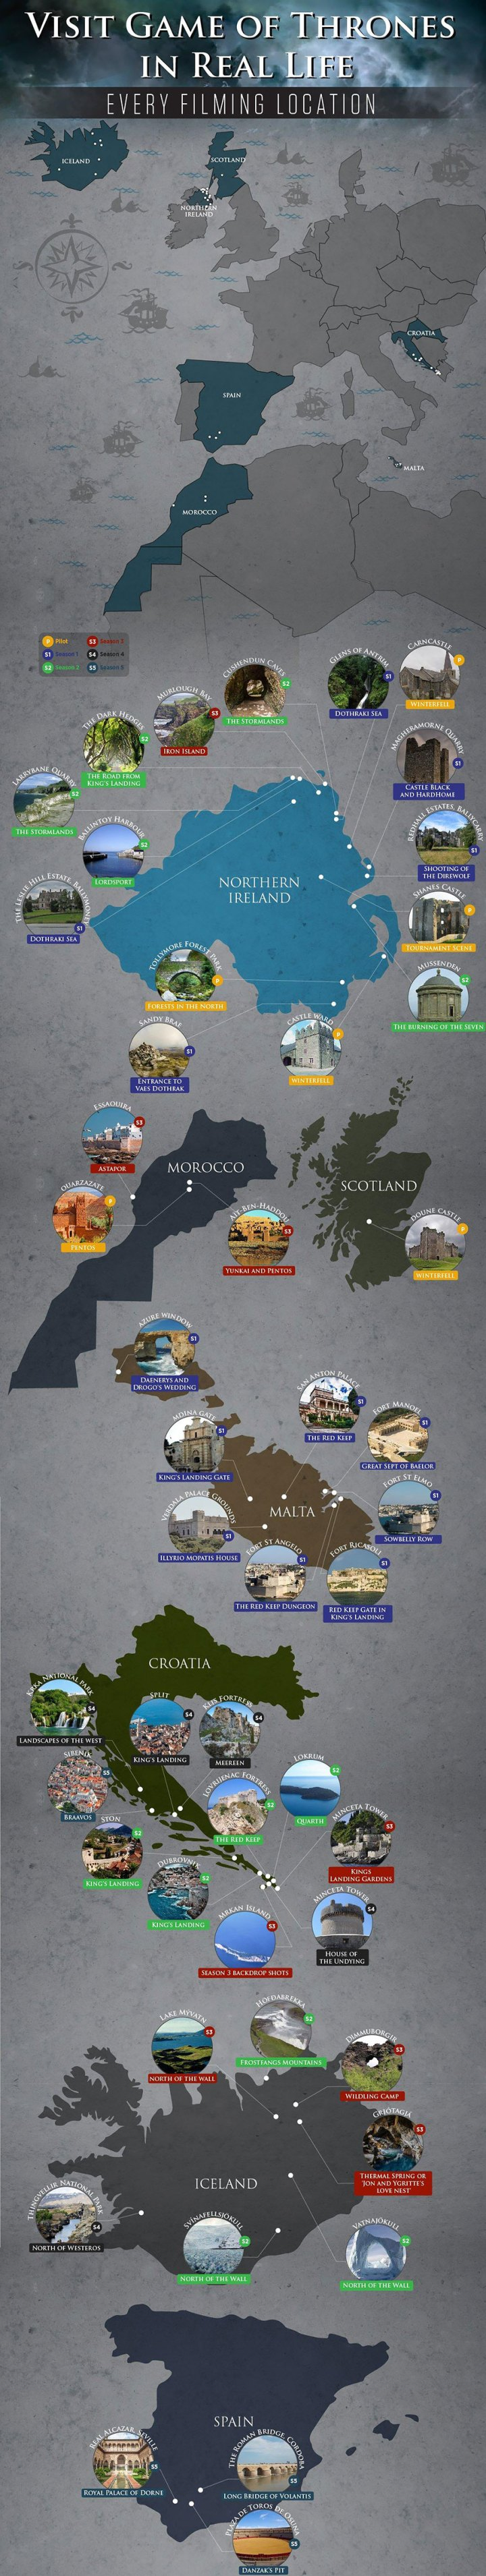 game-of-thrones-real-life-locations-35